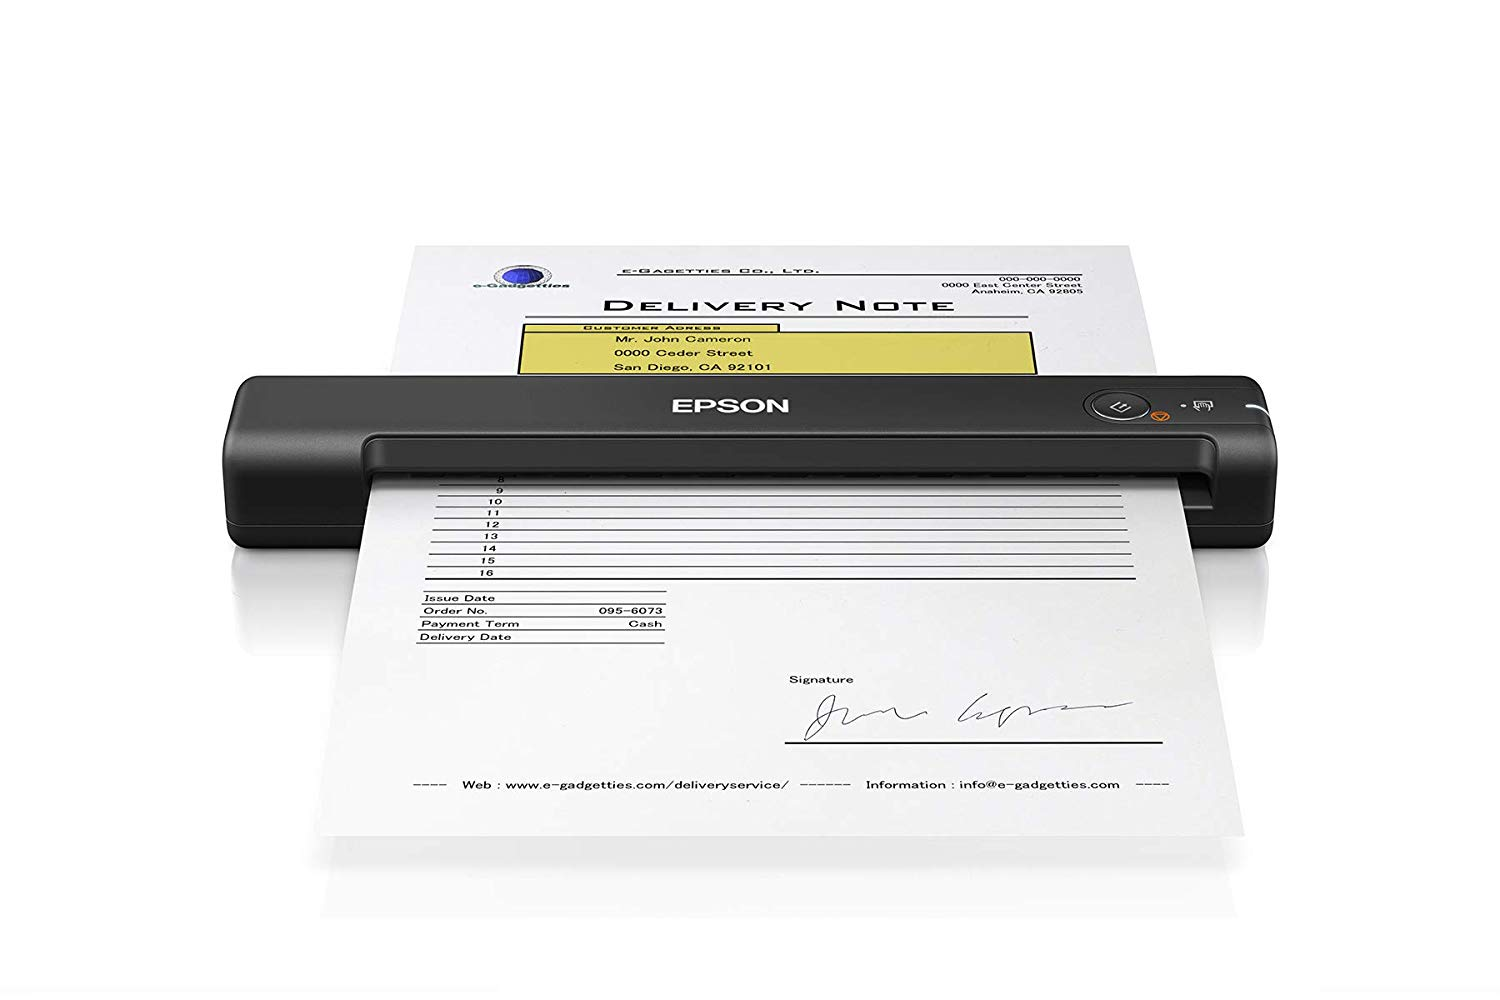 Portable Color Document Scanner